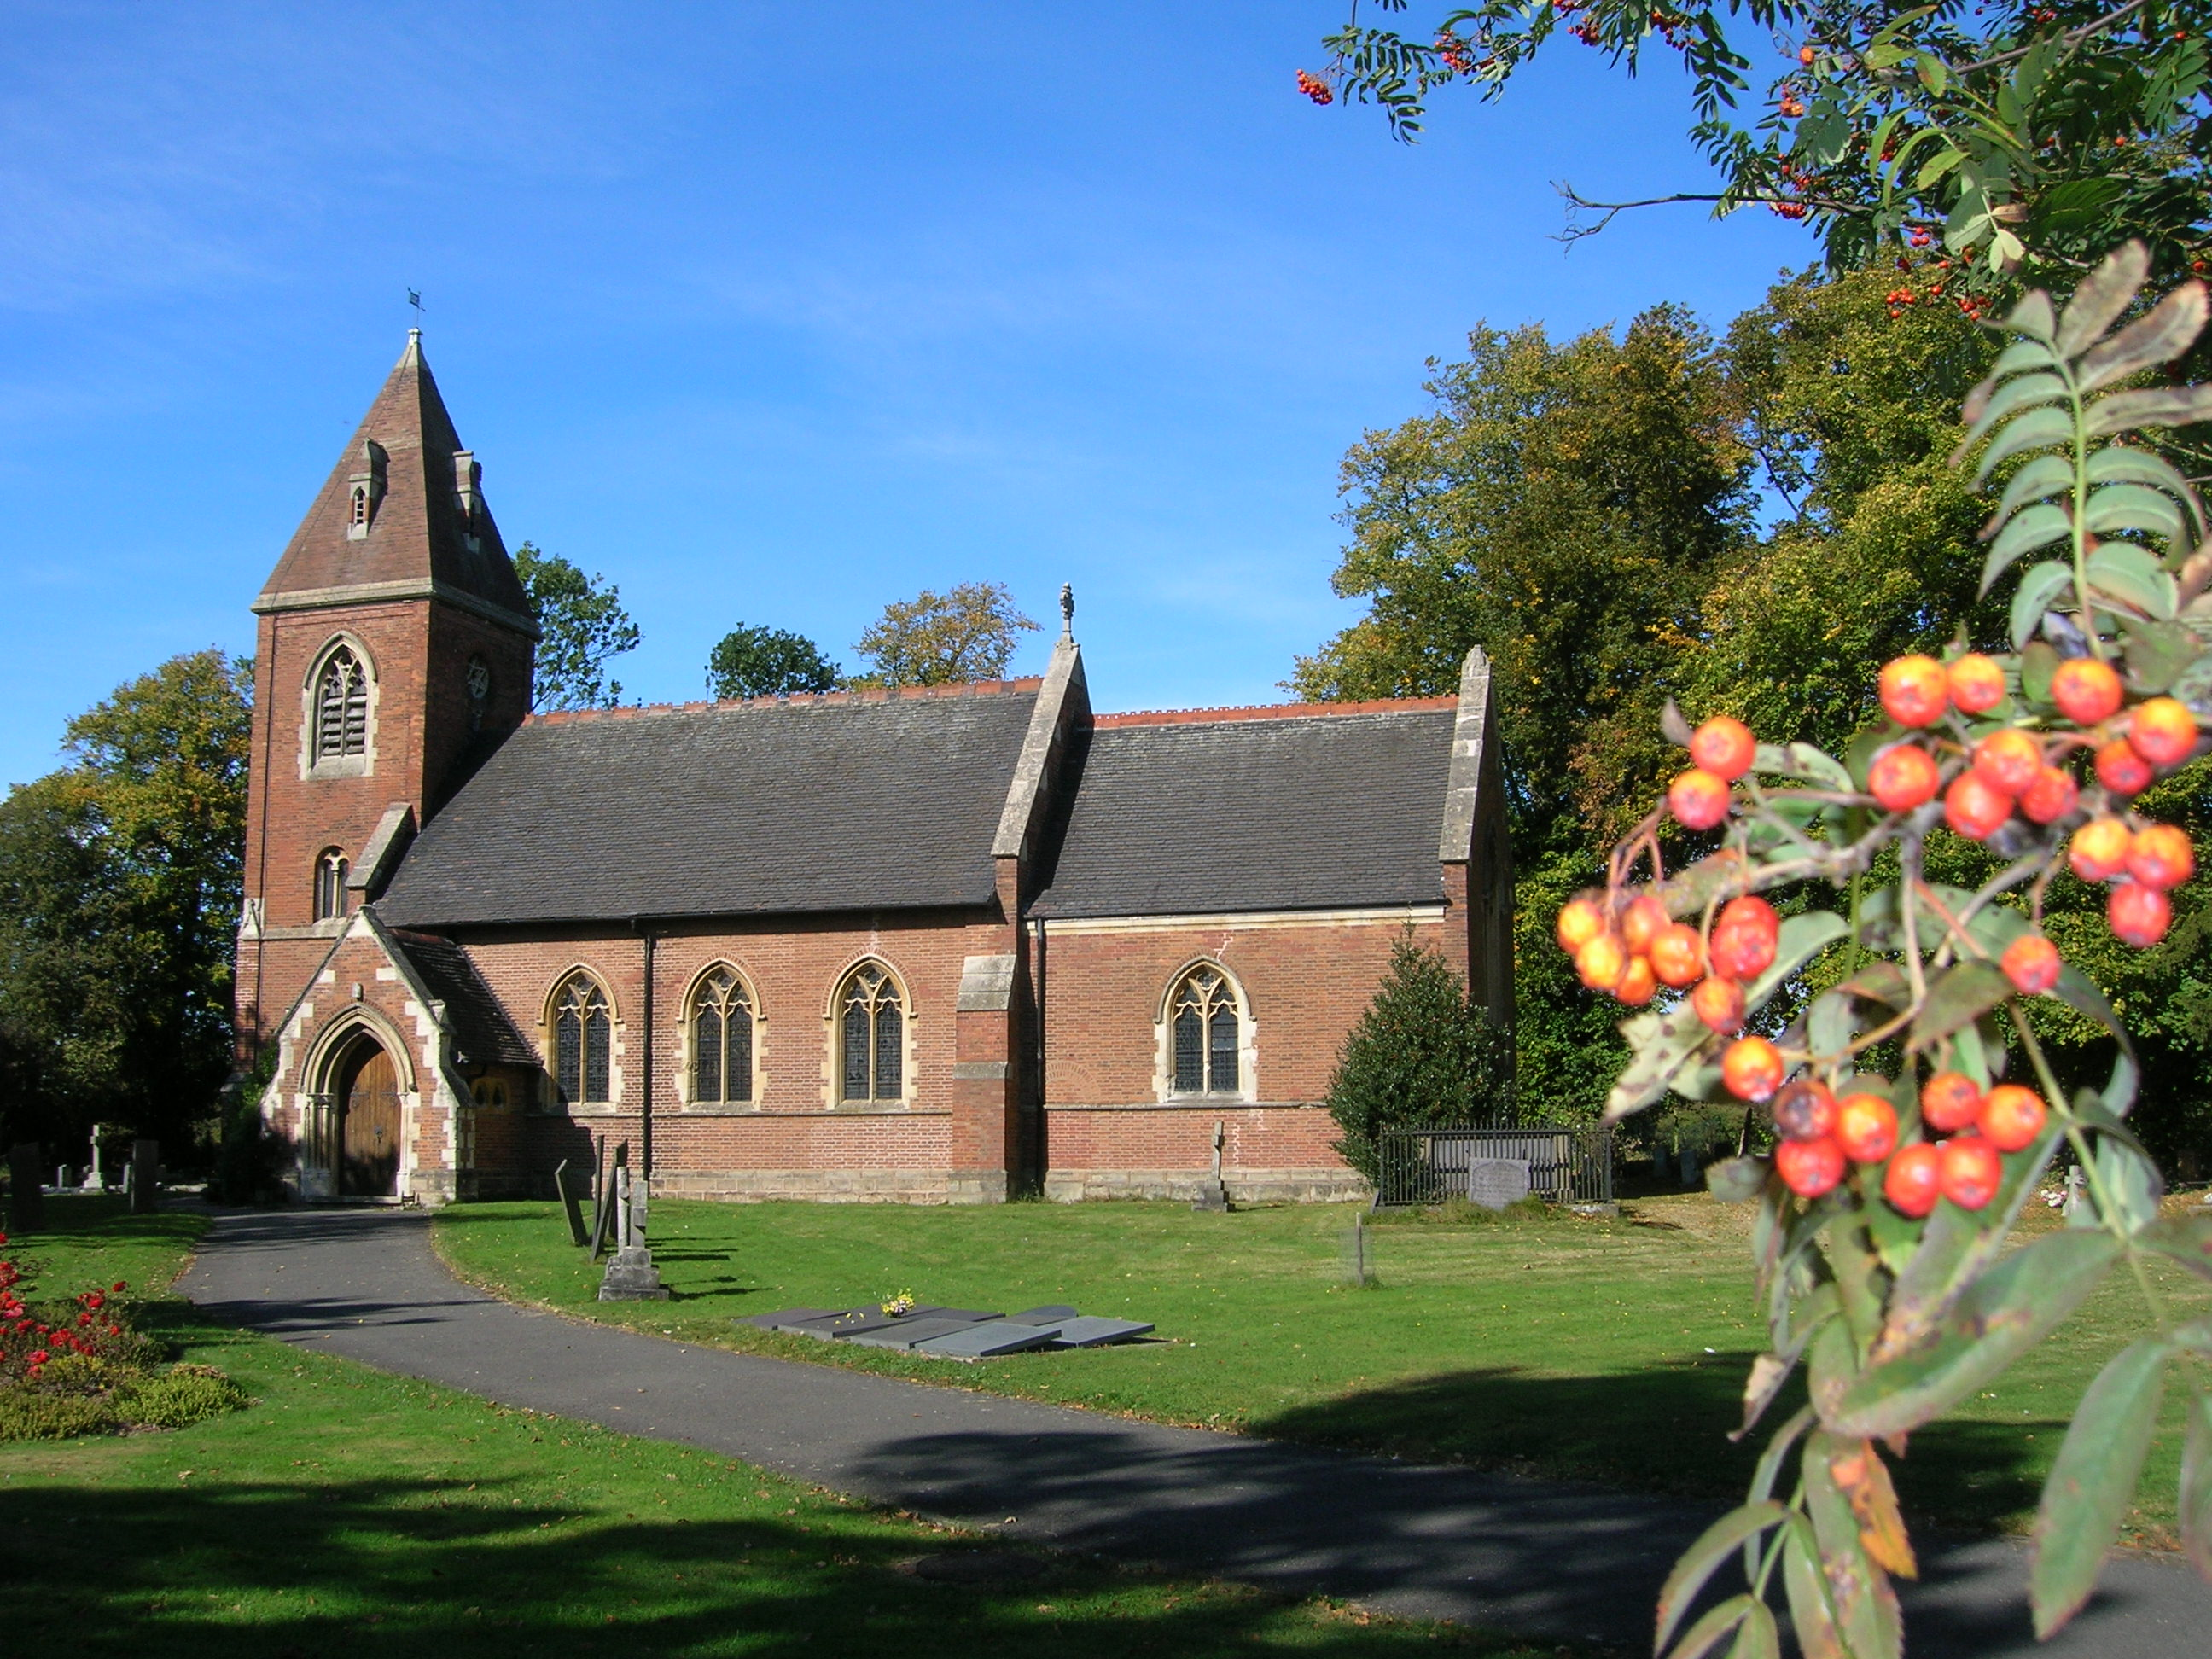 Photo of St James Church on a beautiful blue sky day